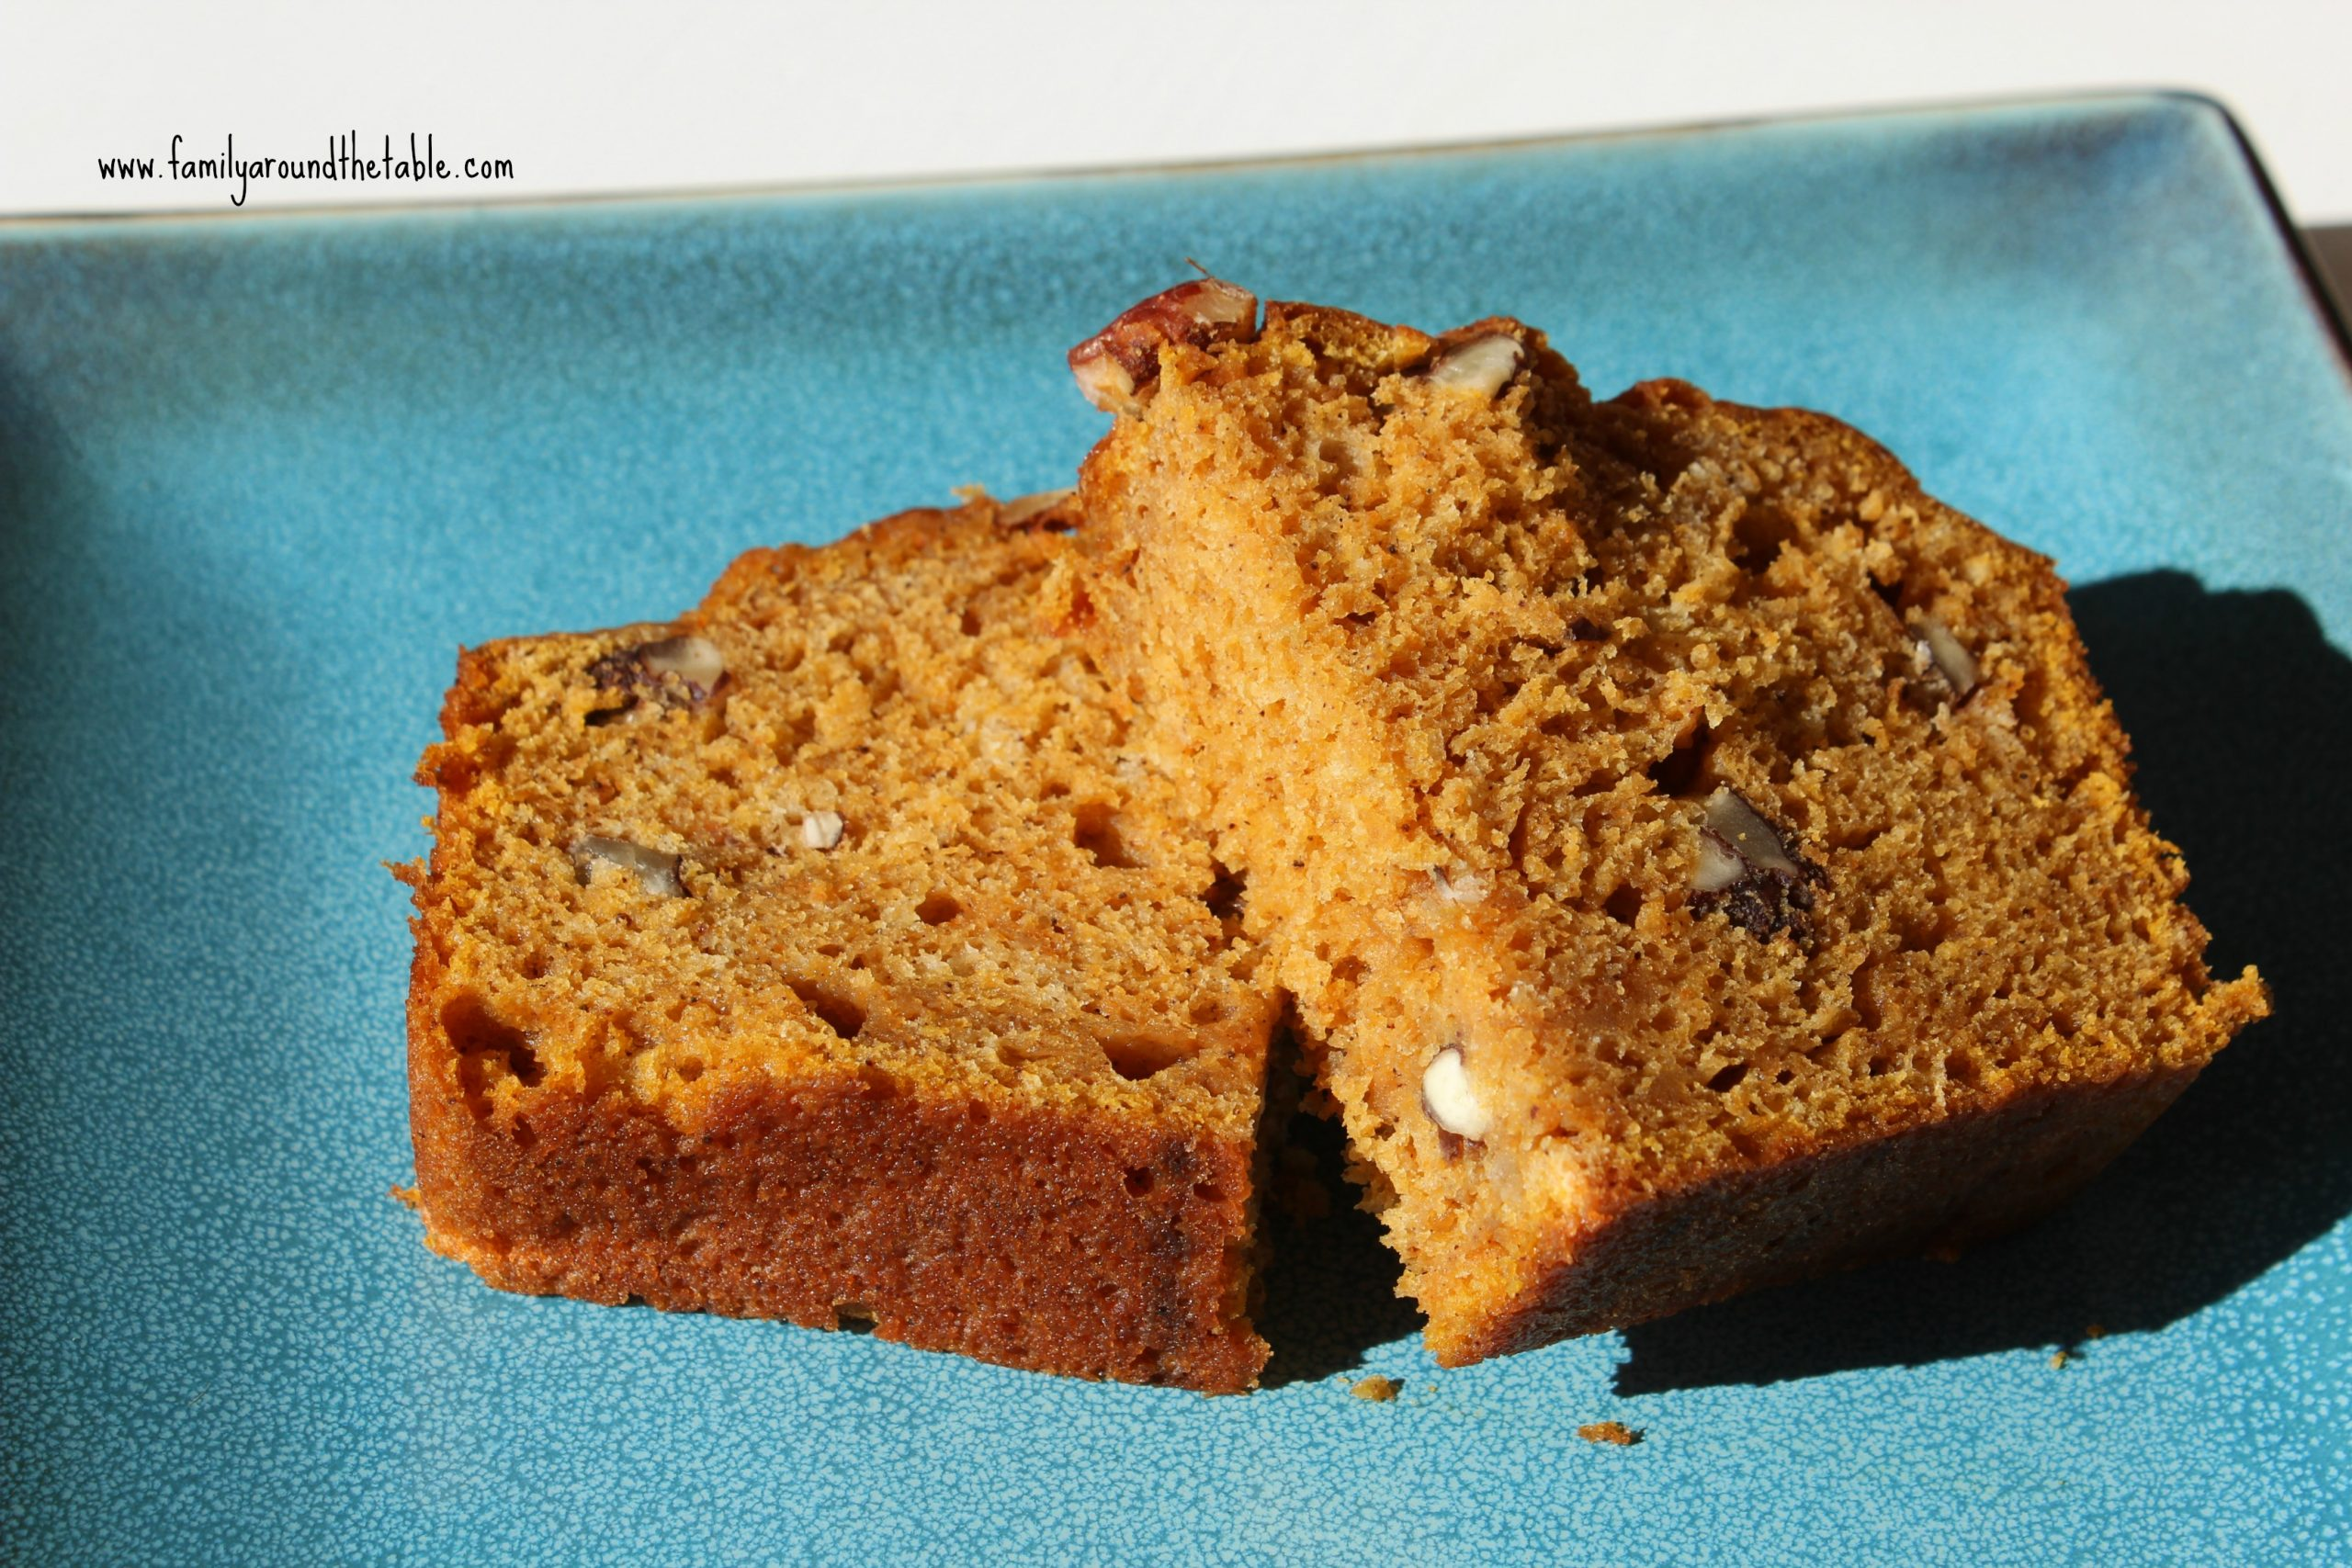 Gigi's Spiced Pumpkin Pecan Bread is delicious warm from the oven with a smear of butter!